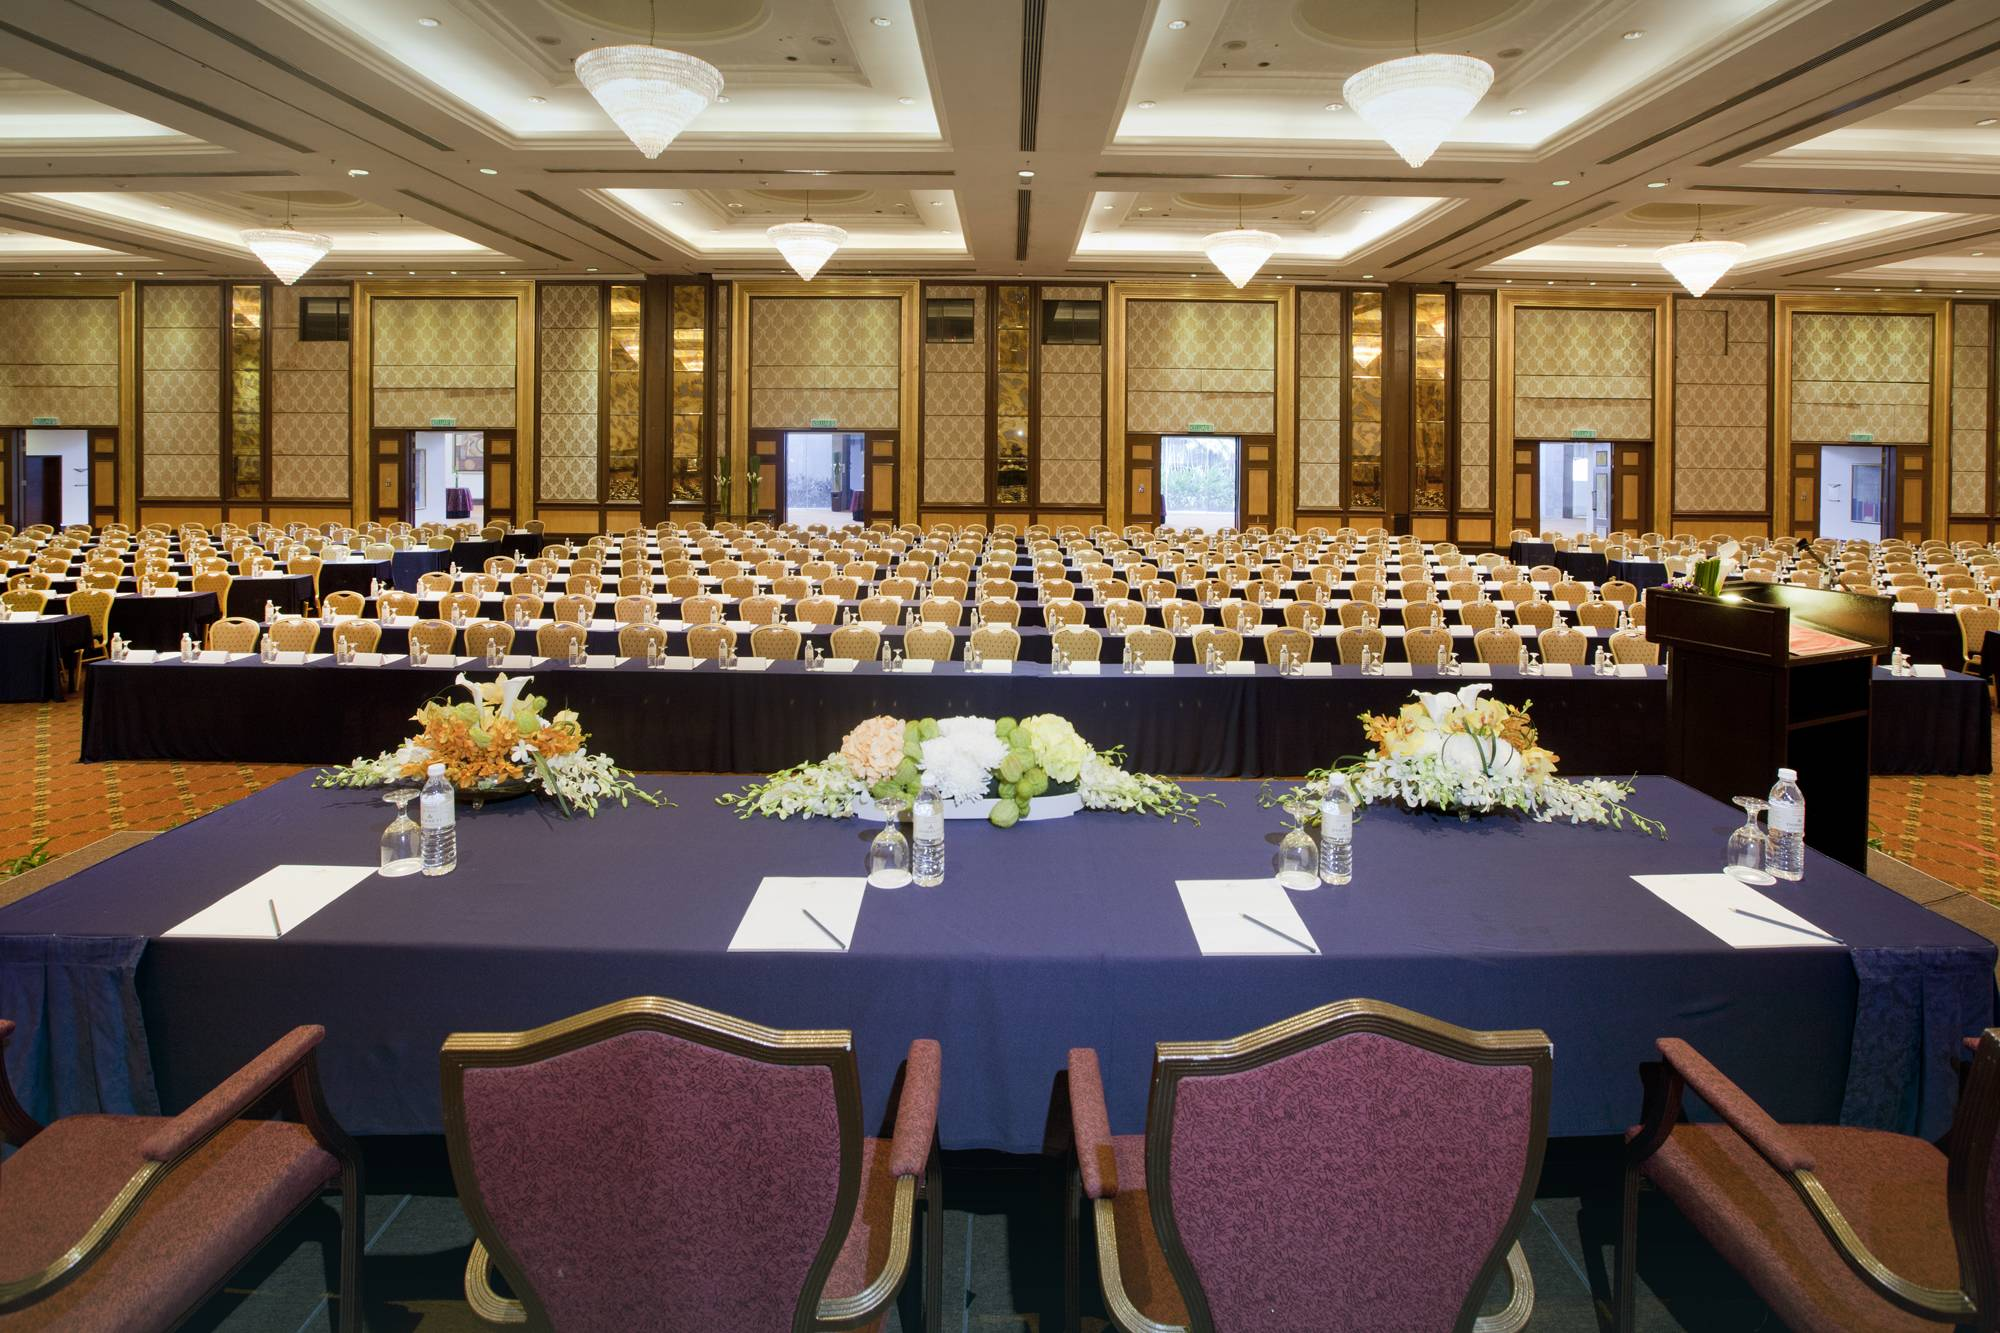 Dorsett Grand Subang pillarless ballroom…the ideal venue for international conferences, conventions and seminars